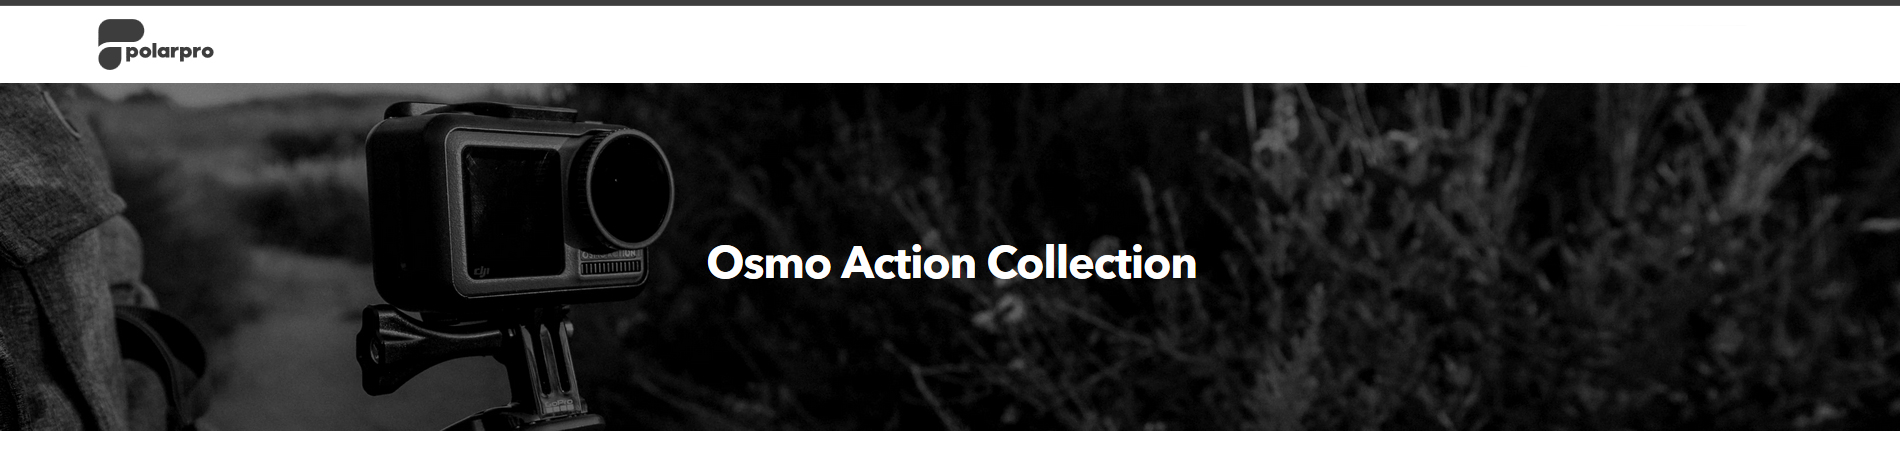 Osmo-Action-Landing